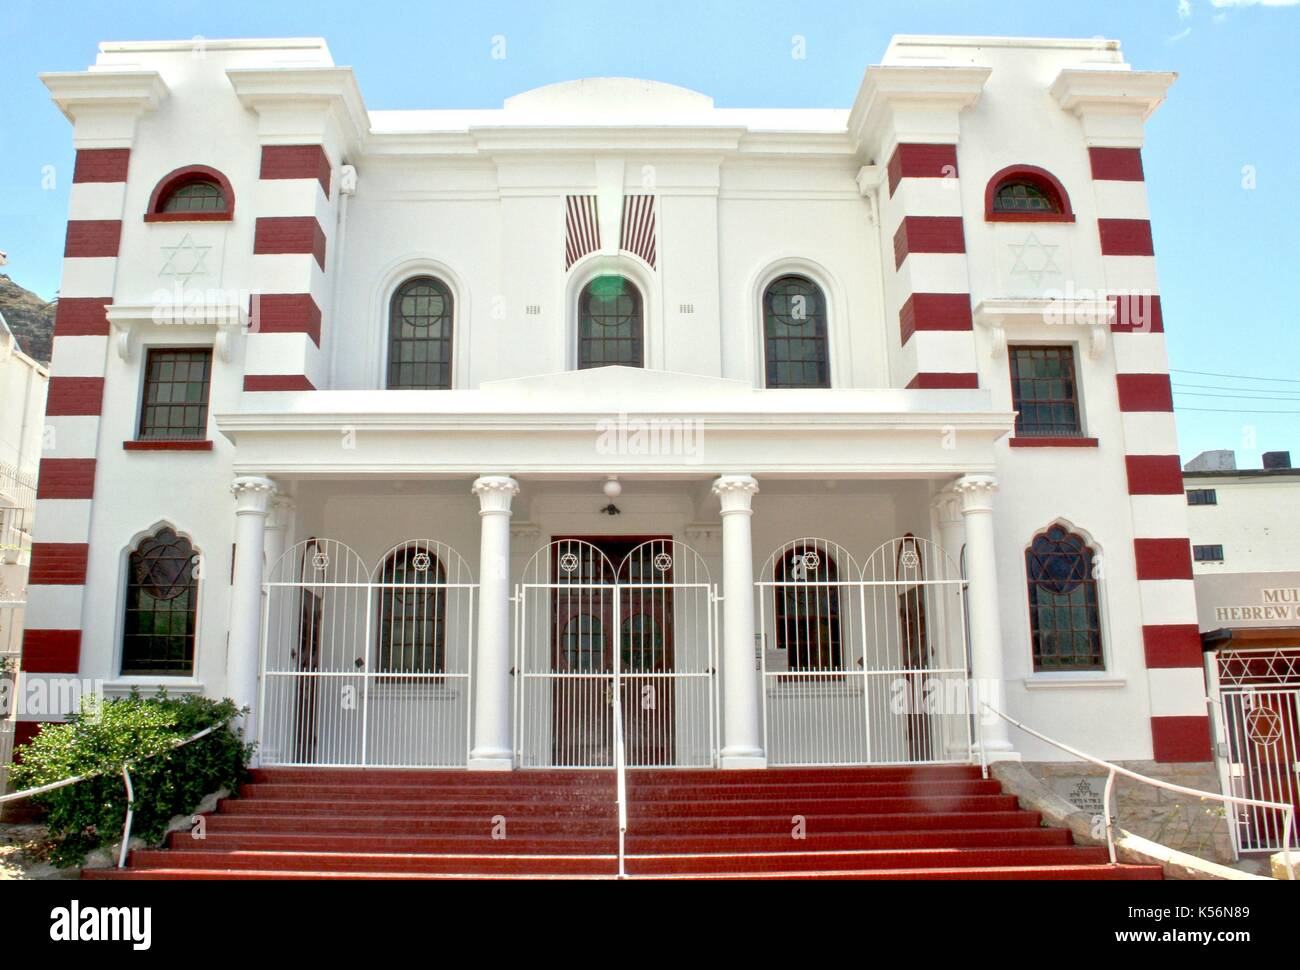 Muizenberg Synagogue, Cape Peninsula - Stock Image